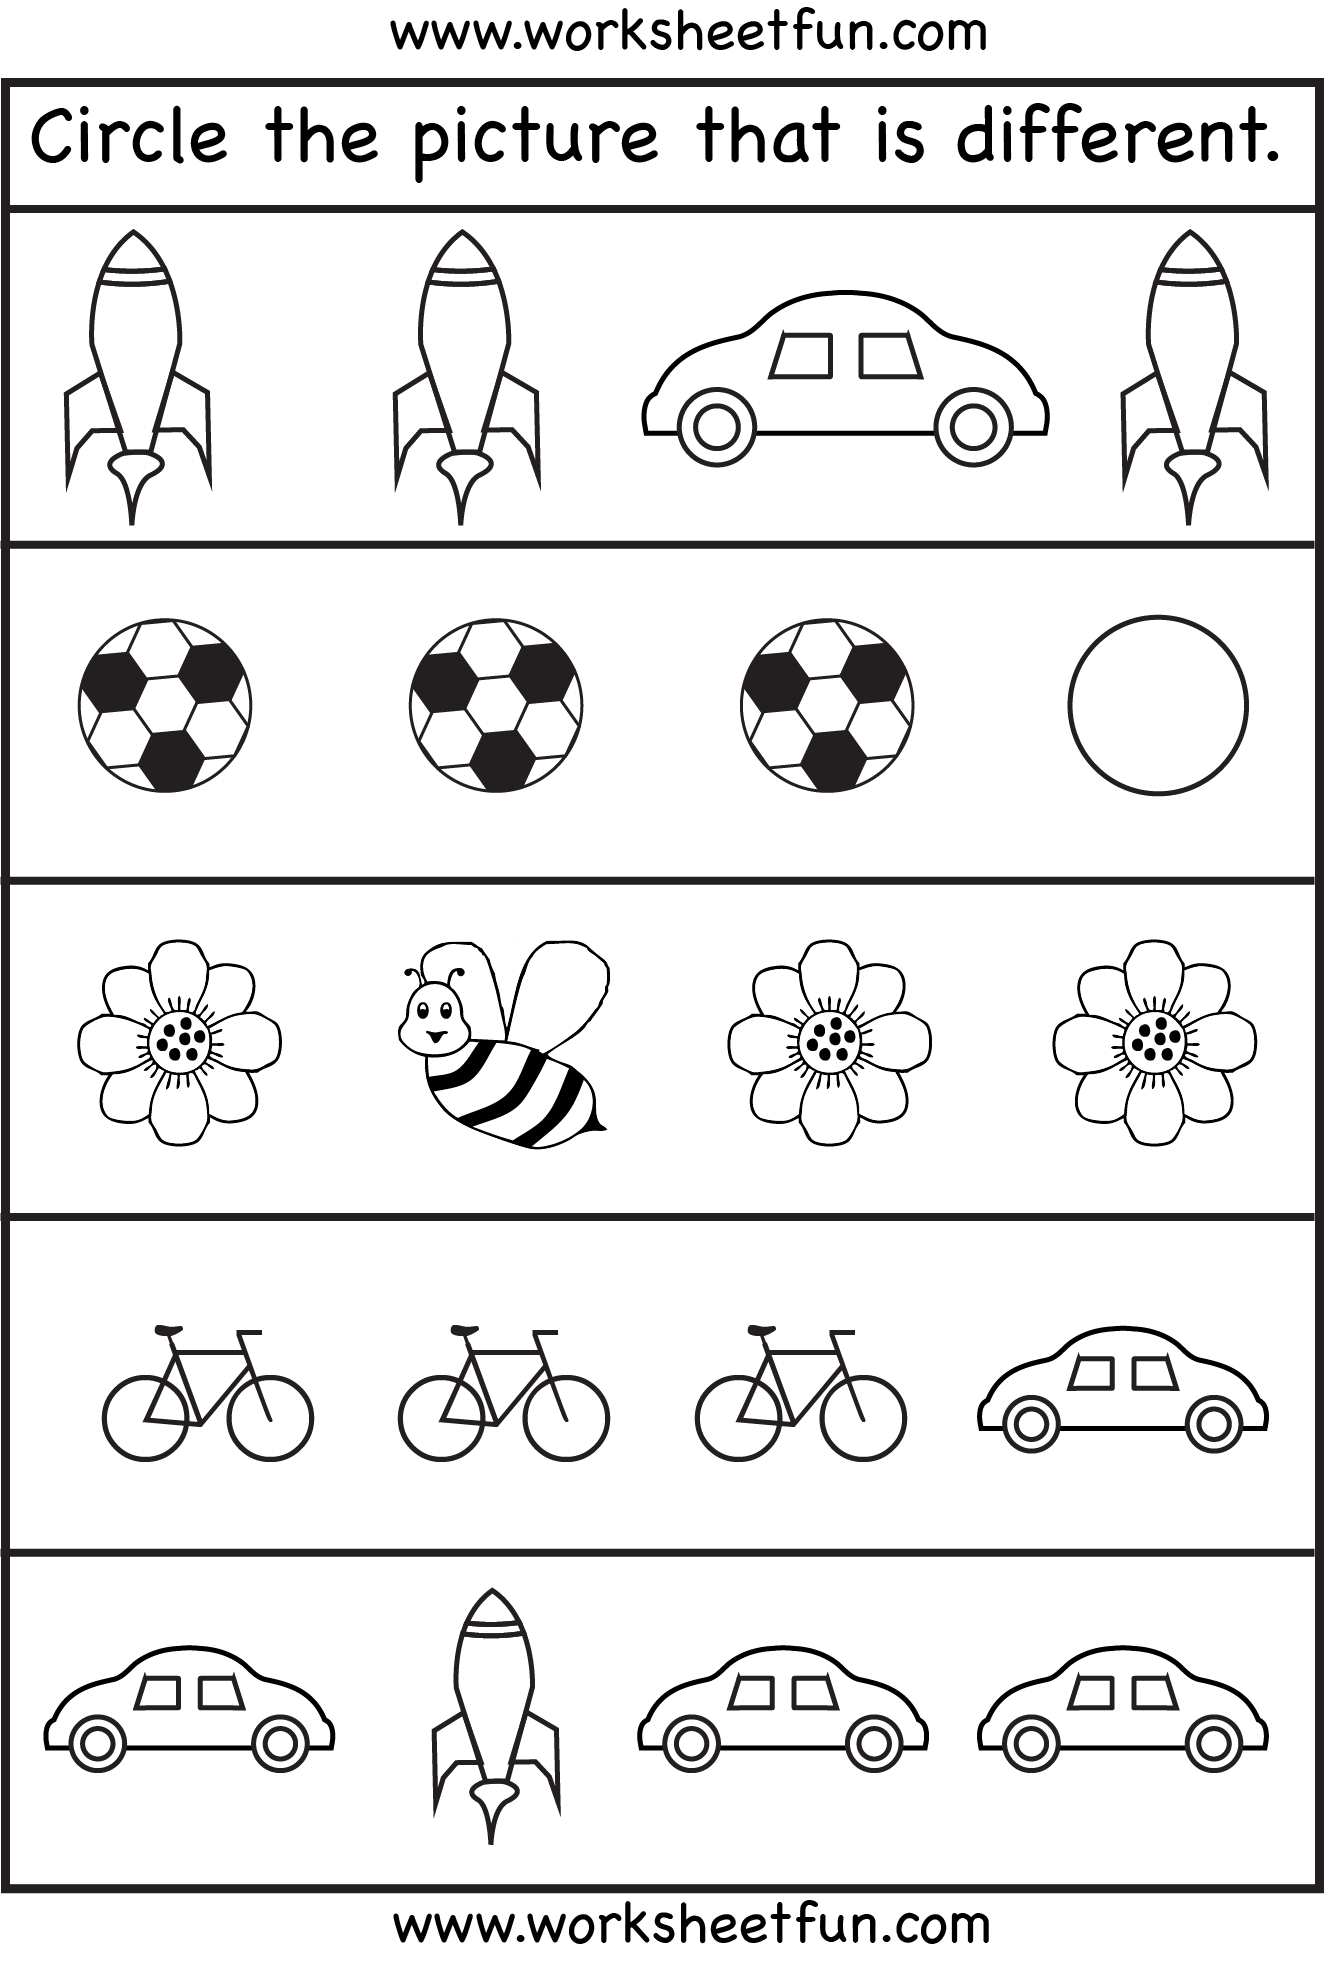 image relating to Printable Activities for Toddlers identify Circle the envision that is alternate - 4 worksheets